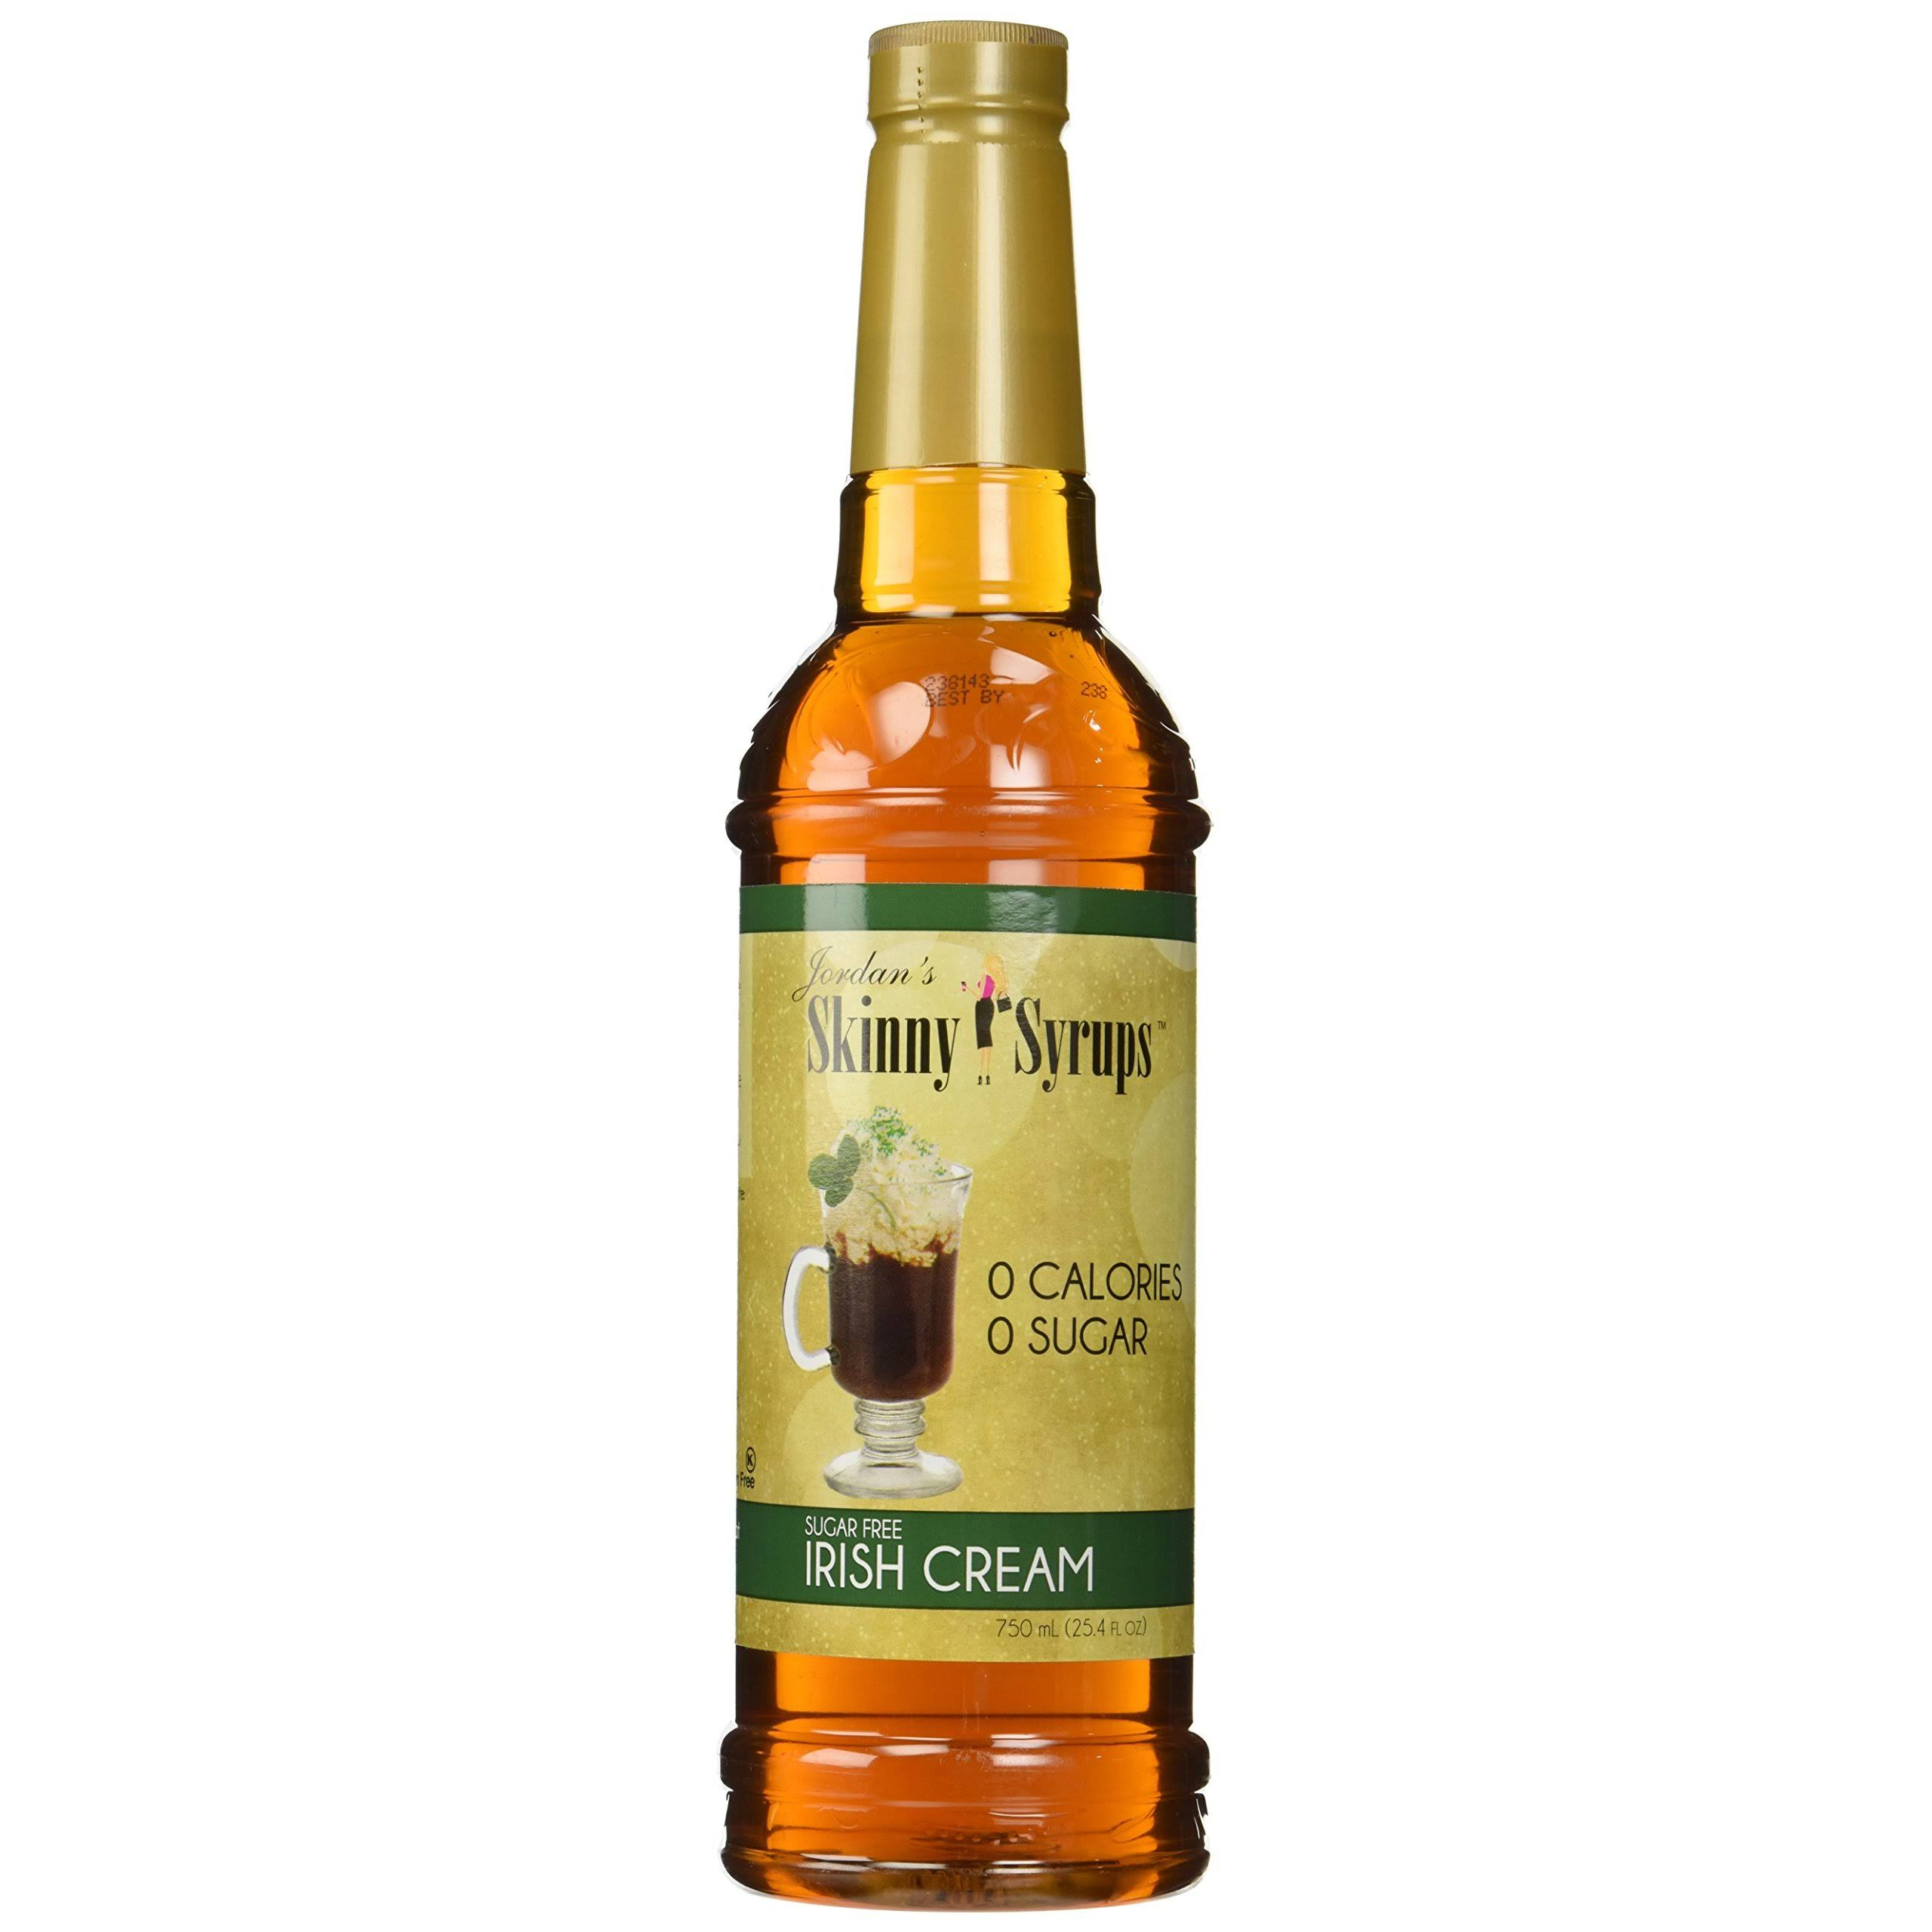 Jordan's Skinny Syrups - Sugar-Free, Irish Cream, 25.4oz